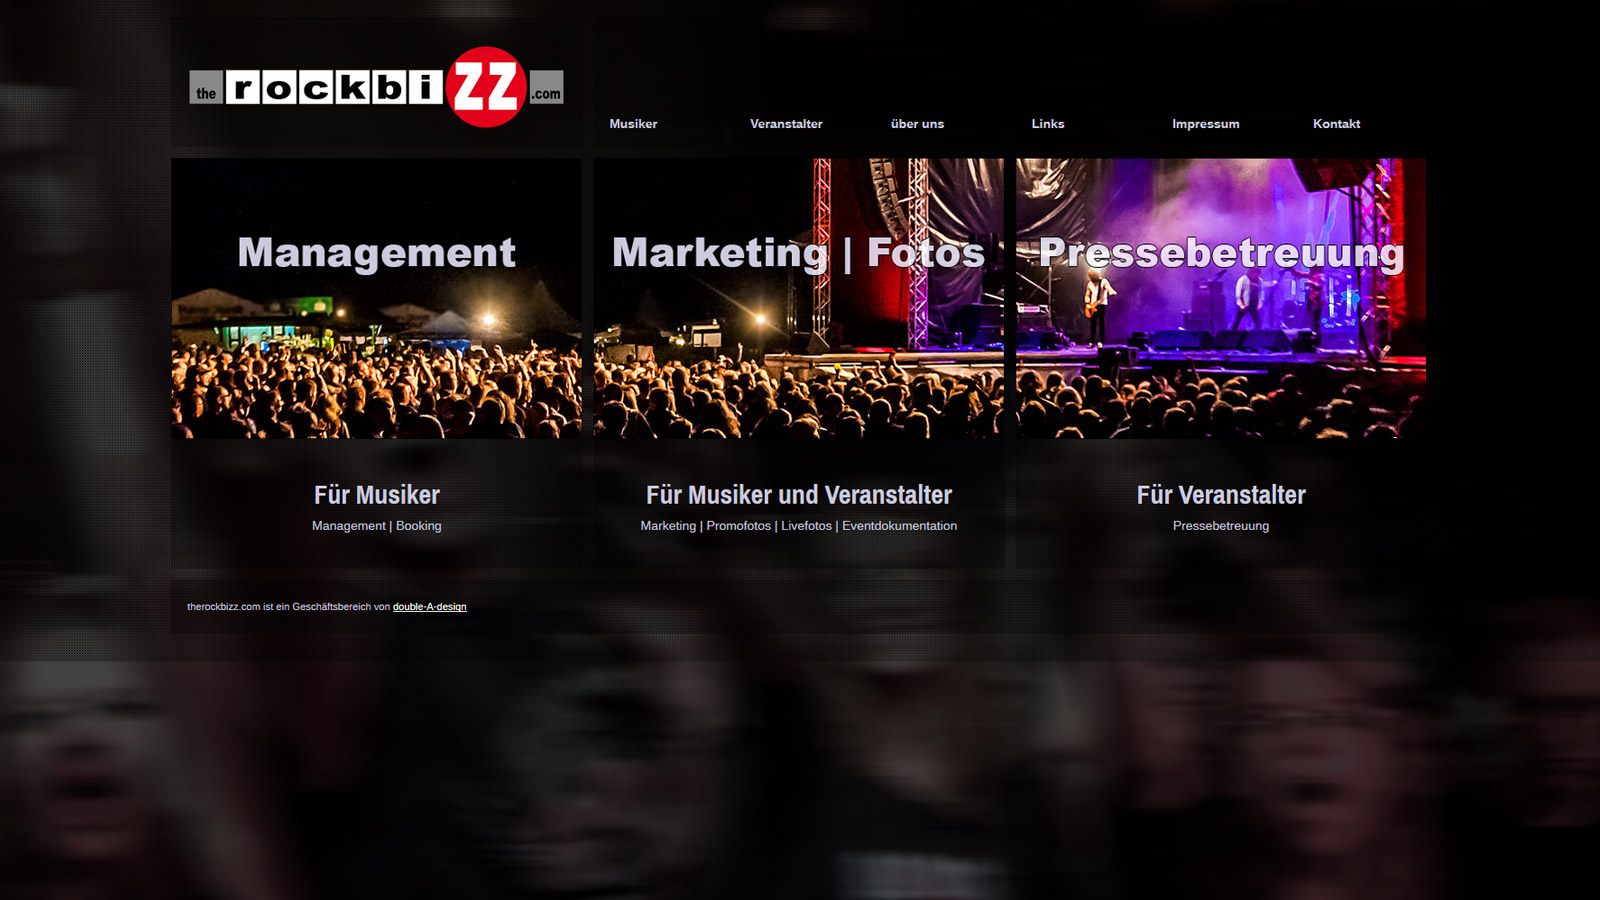 therockbizz.com | Management und Marketing